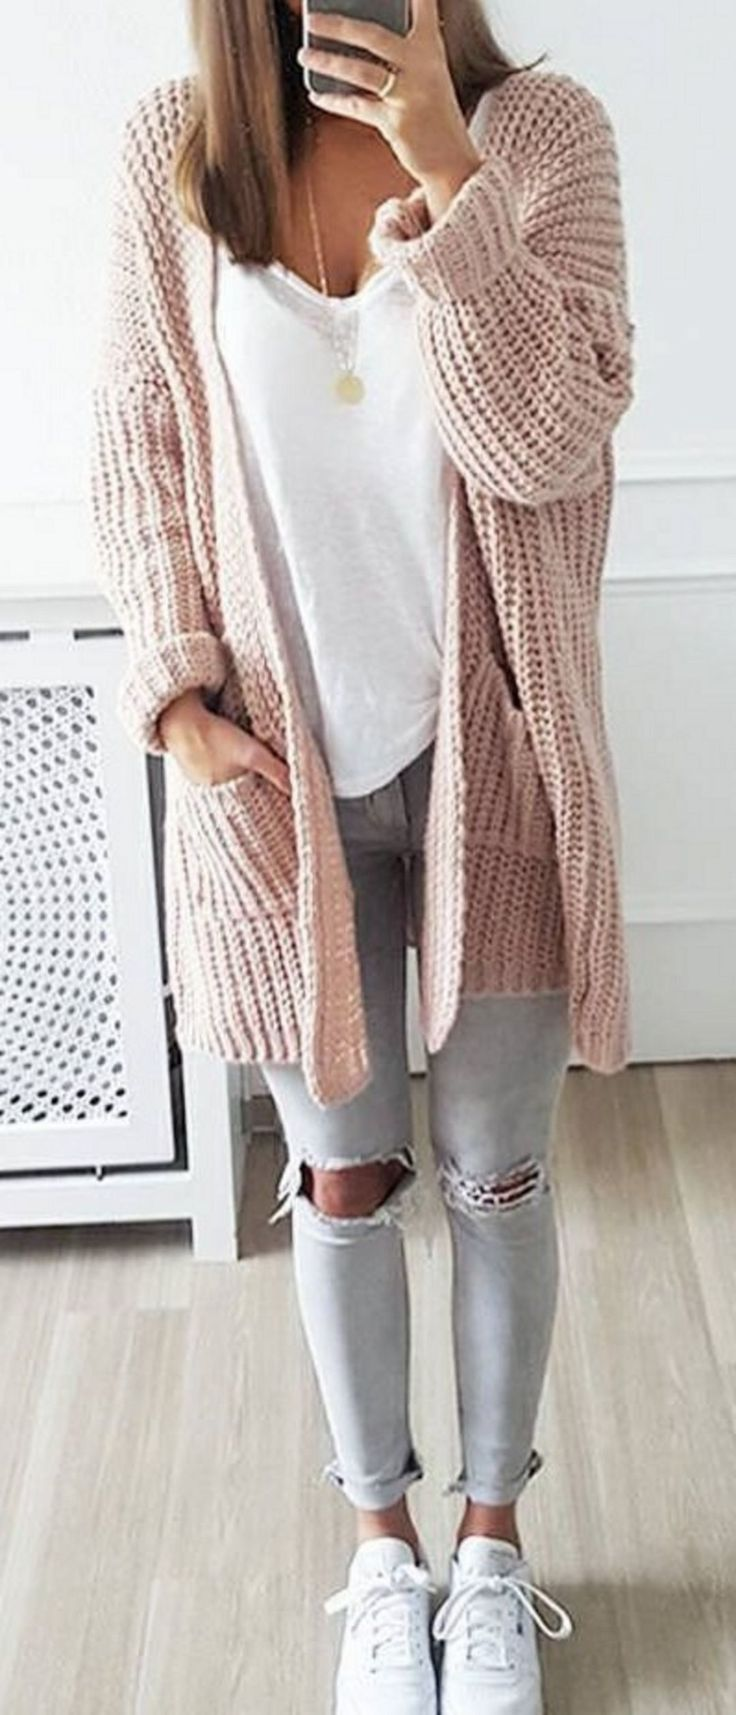 Amazing 40+ Most Awesome Women Outfits Ideas For Women Looks More Pretty https://www.tukuoke.com/40-most-awesome-women-outfits-ideas-for-women-looks-more-pretty-12549